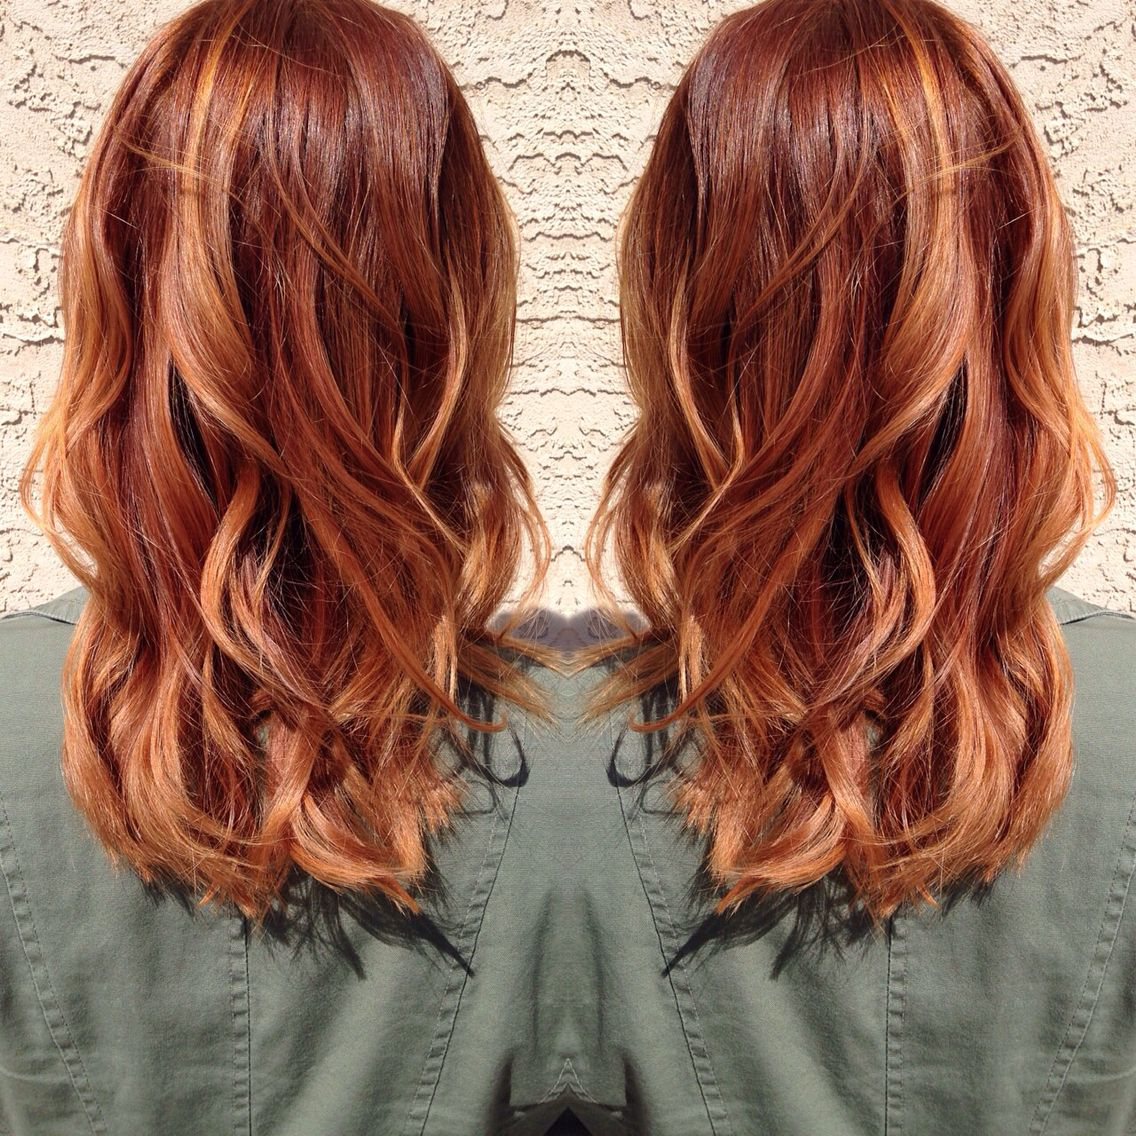 Medium copper blonde hair. | Blonde Hairstyles Dirty ...